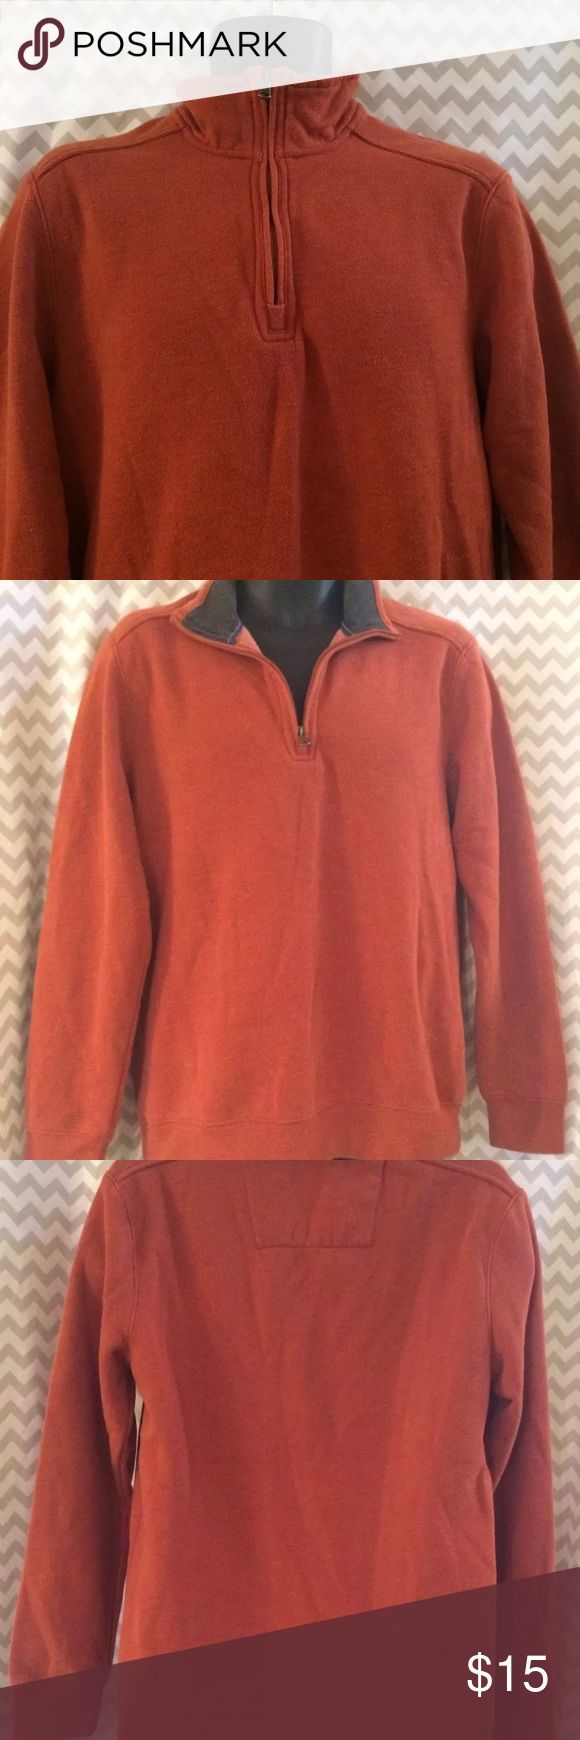 😎SALE😎Arrow Mens Pullover Sweater Like New!! Arrow brand men's pullover collared sweater with a half zip front in a burnt orange color. Has no pockets. Size Small. In very gently used condition, with no stains or rips and very little wear.  Measurements-  Chest: 20 in.  Length: 28.5 in.  Shoulders: 17 in.  Sleeve: 24.75 in. Arrow Sweaters Zip Up